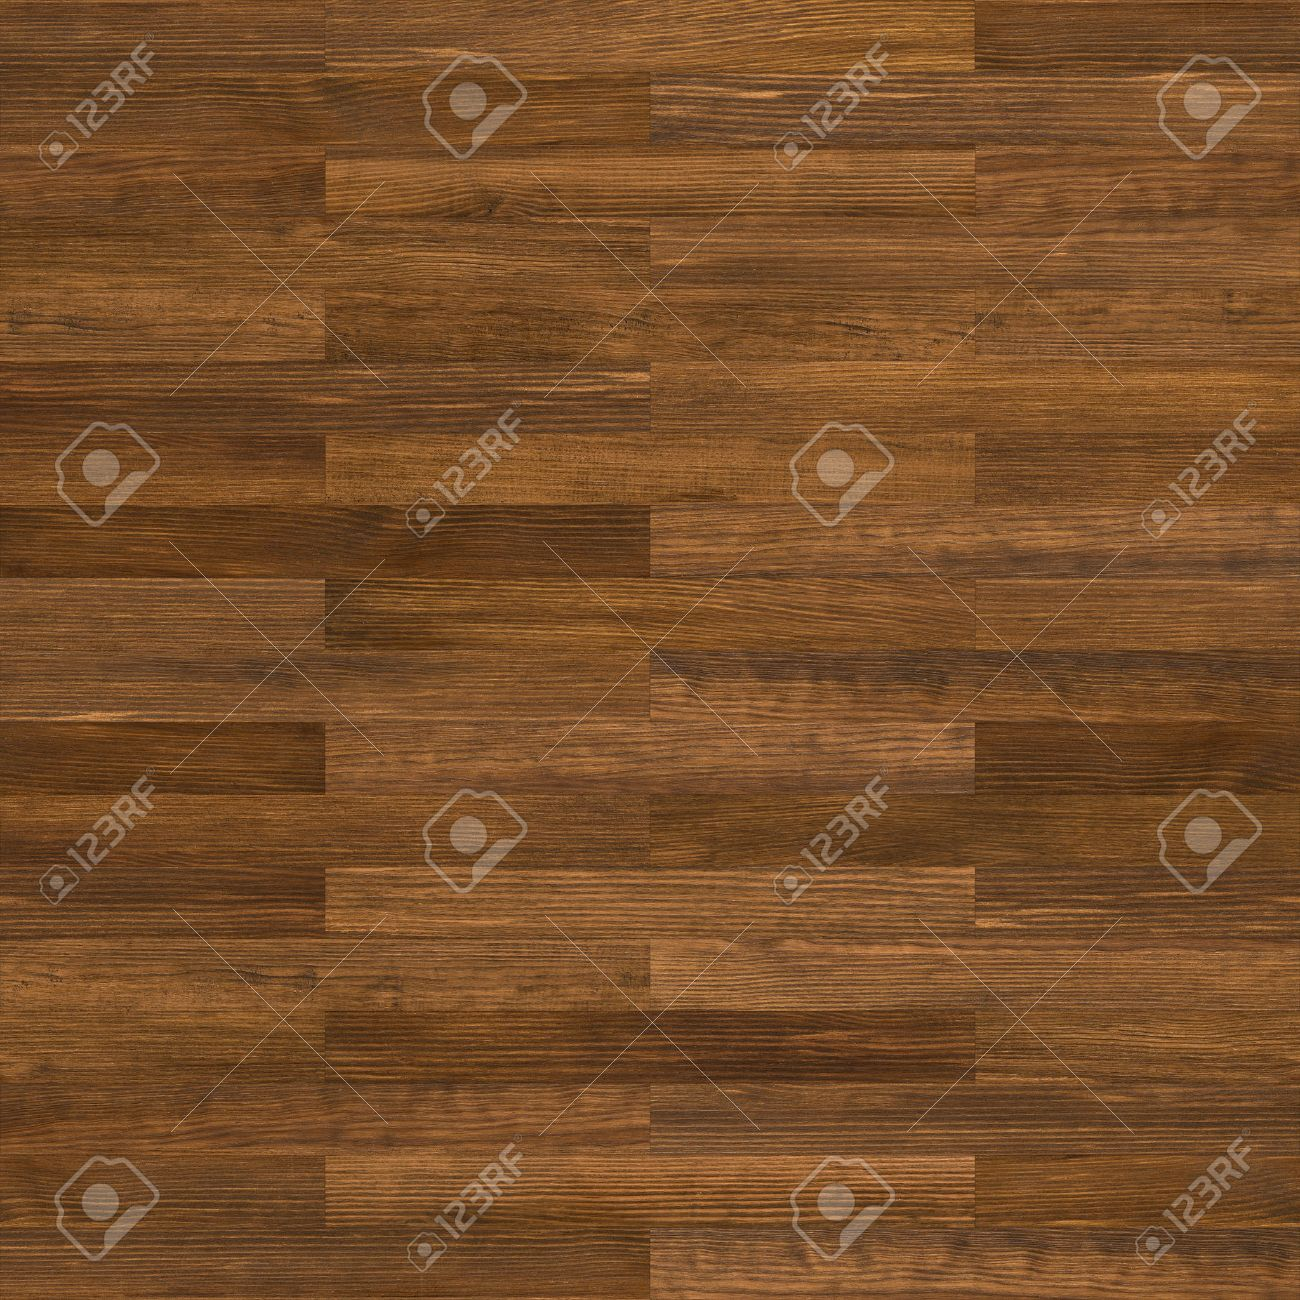 Seamless brown wood texture. Can be used as floor, wall pattern, or table background. Stock Photo - 48054522